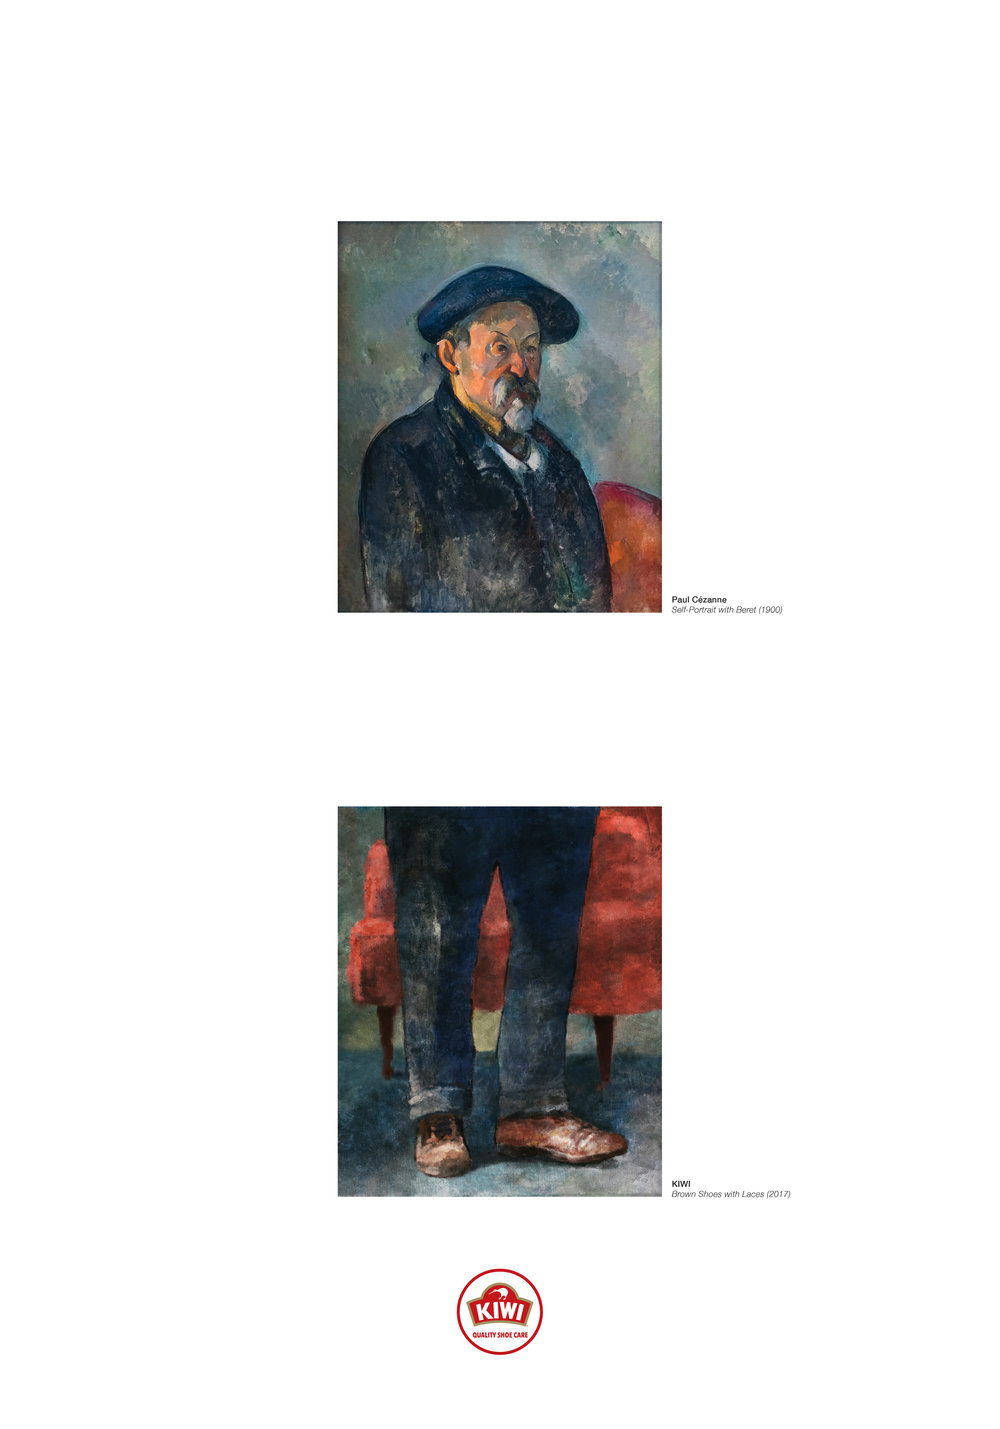 E03_ KIWIPORTRAITSCOMPLETED_CEZANNE.jpg